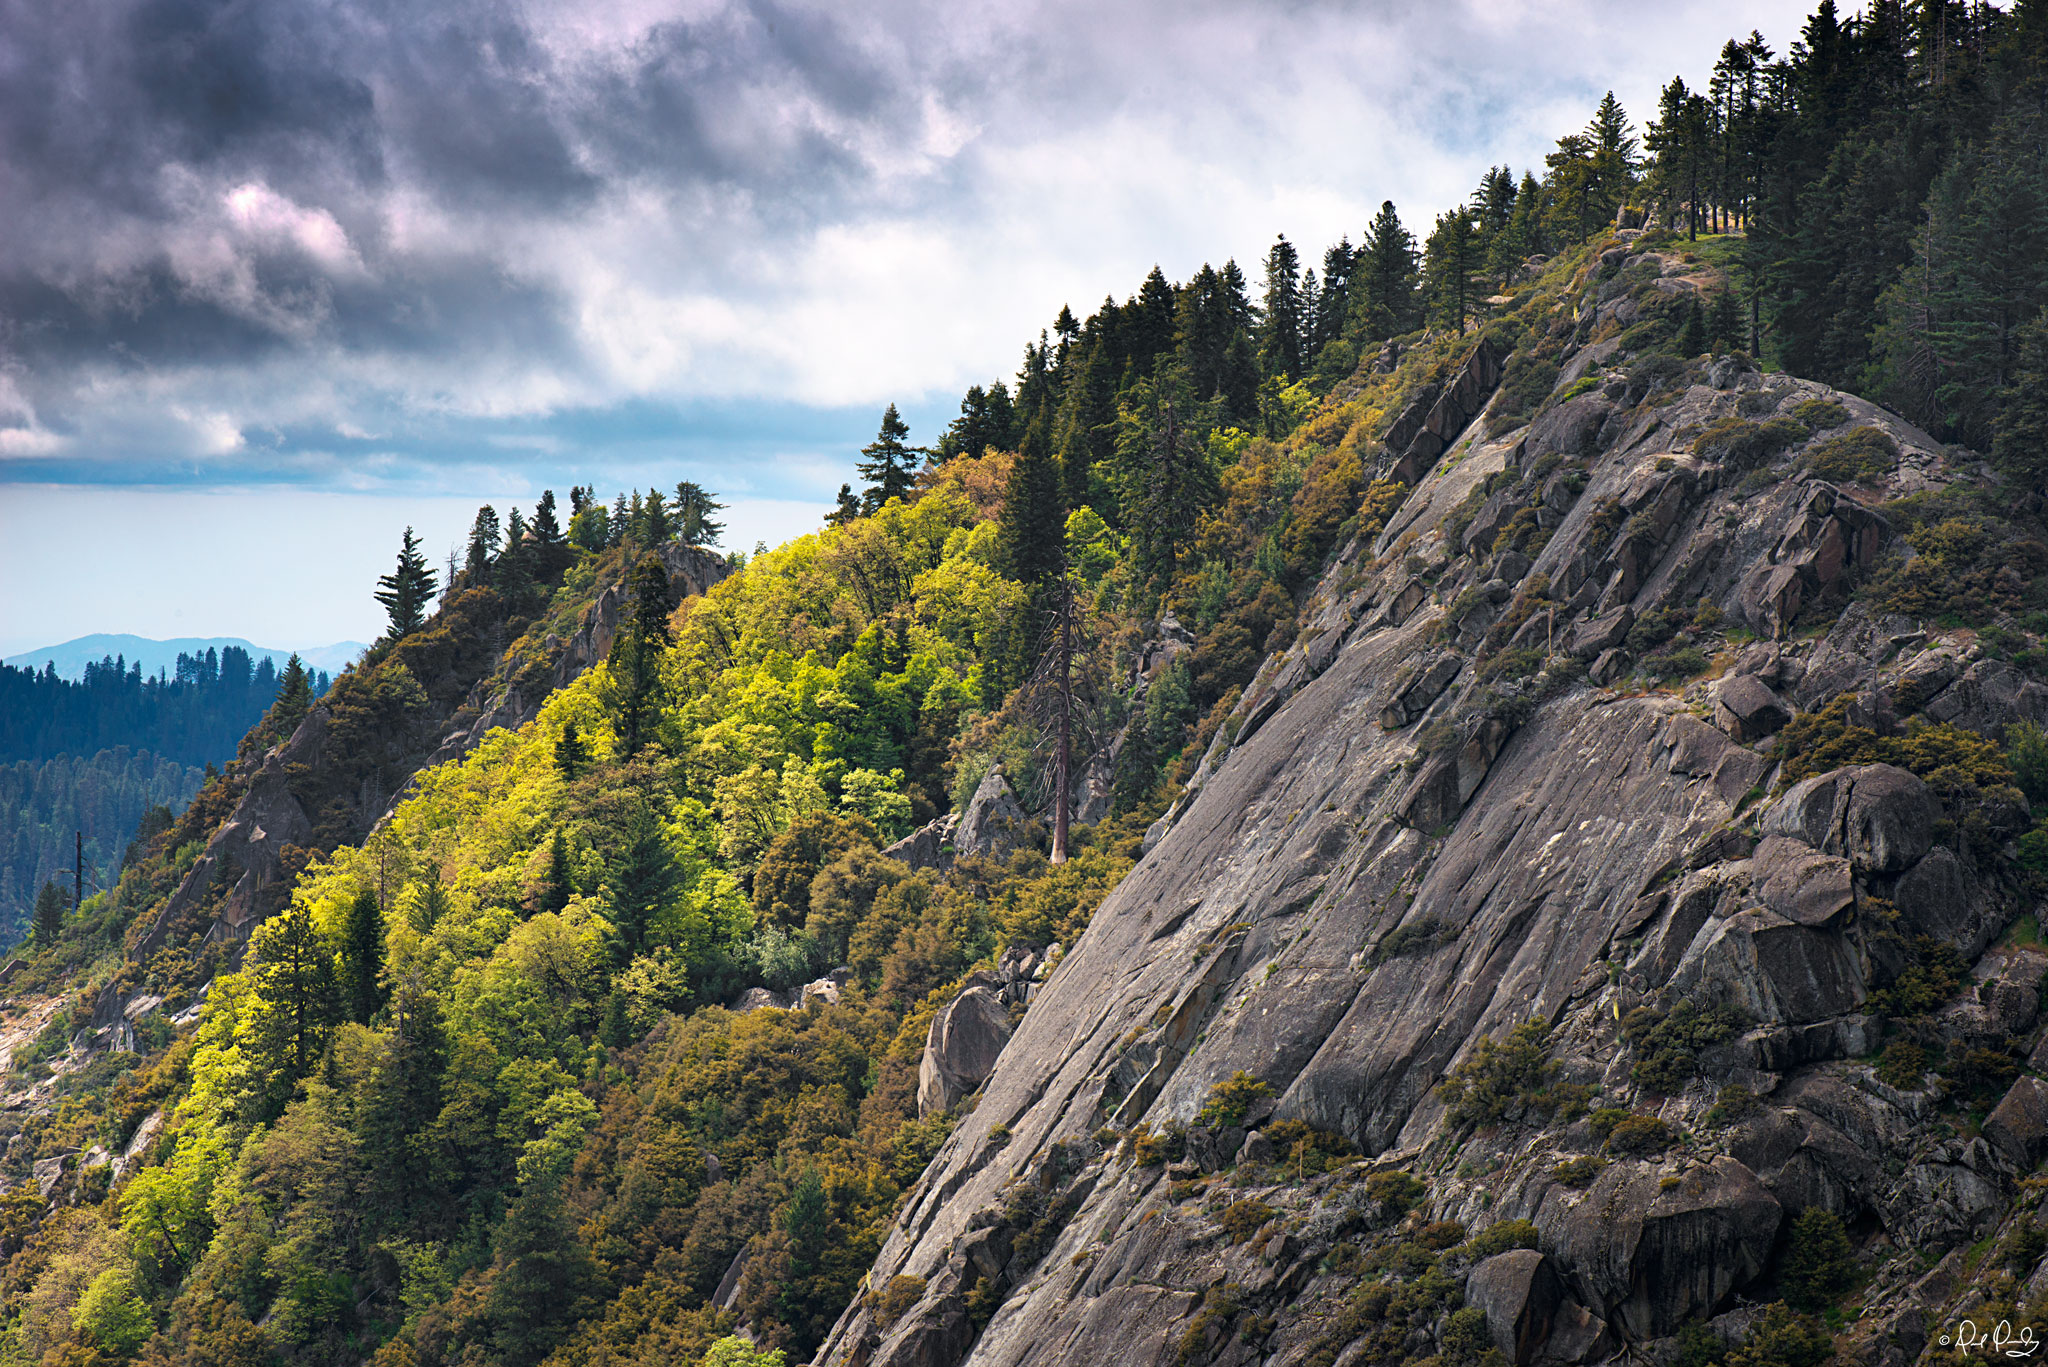 View from moro rock dqphotos com